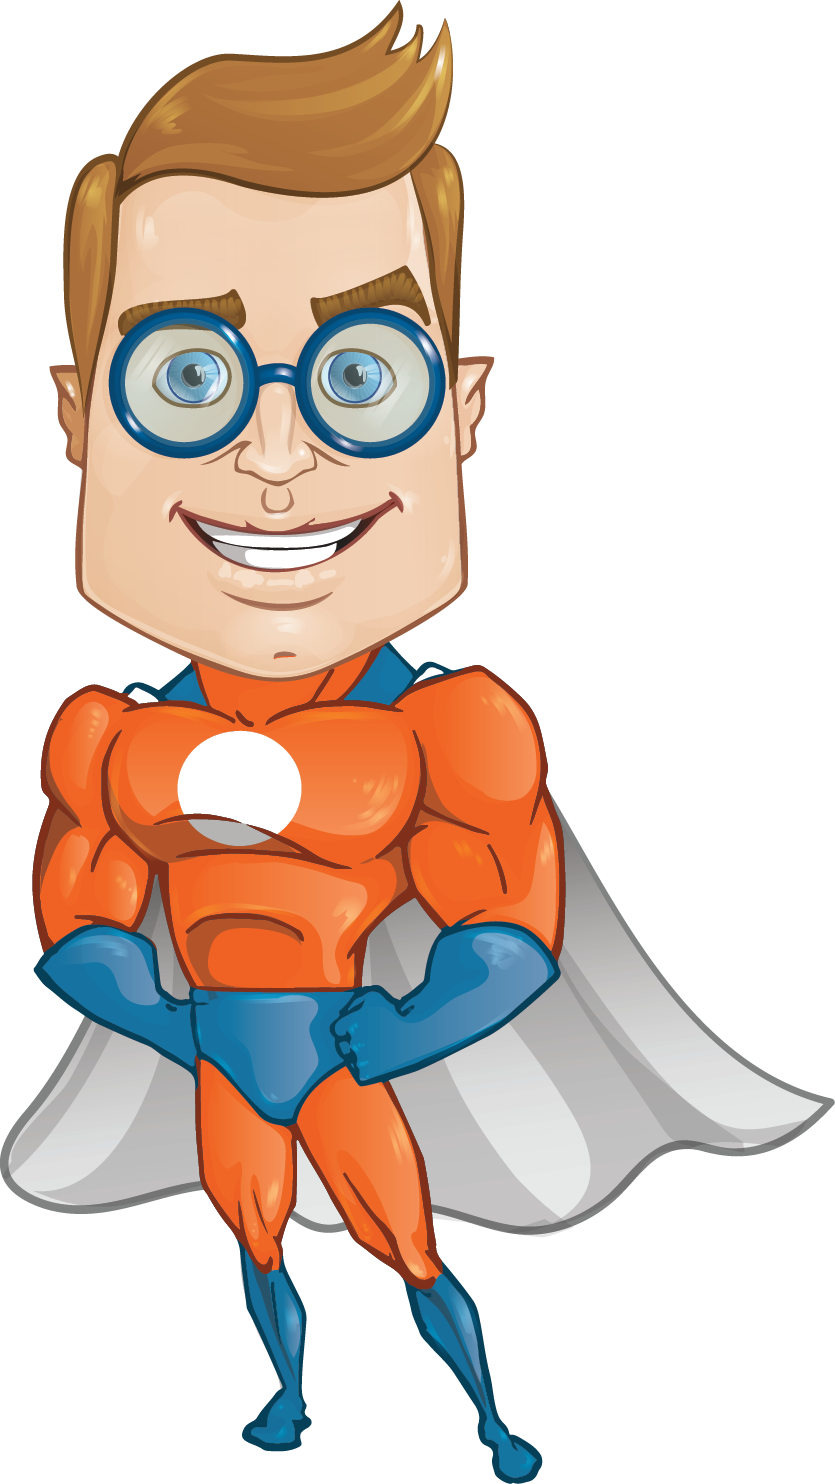 Microsoft clipart clip art. Superhero free to use